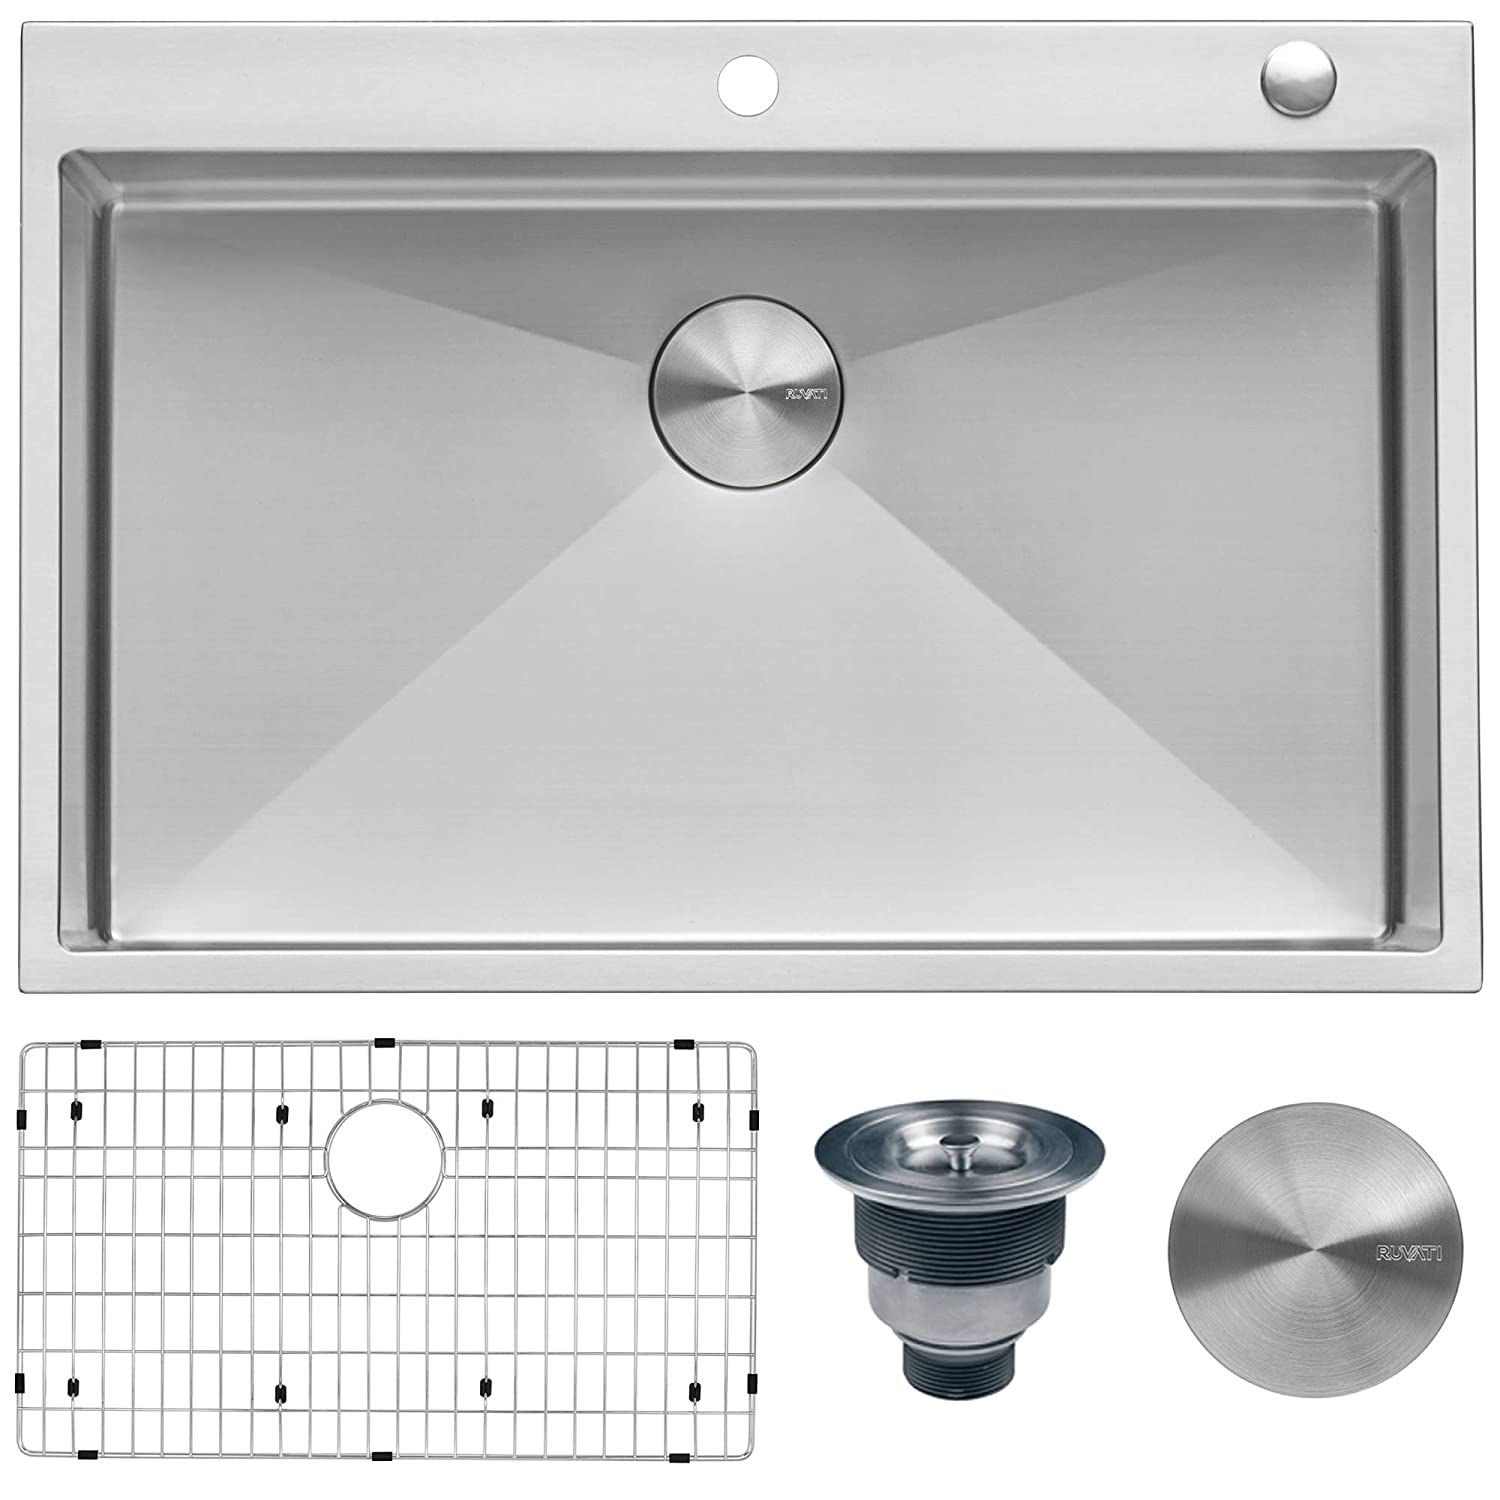 Ruvati 33 x 22 inch Drop-in Tight Radius 16 Gauge Stainless Steel Topmount Kitchen Sink Single Bowl – RVH8005